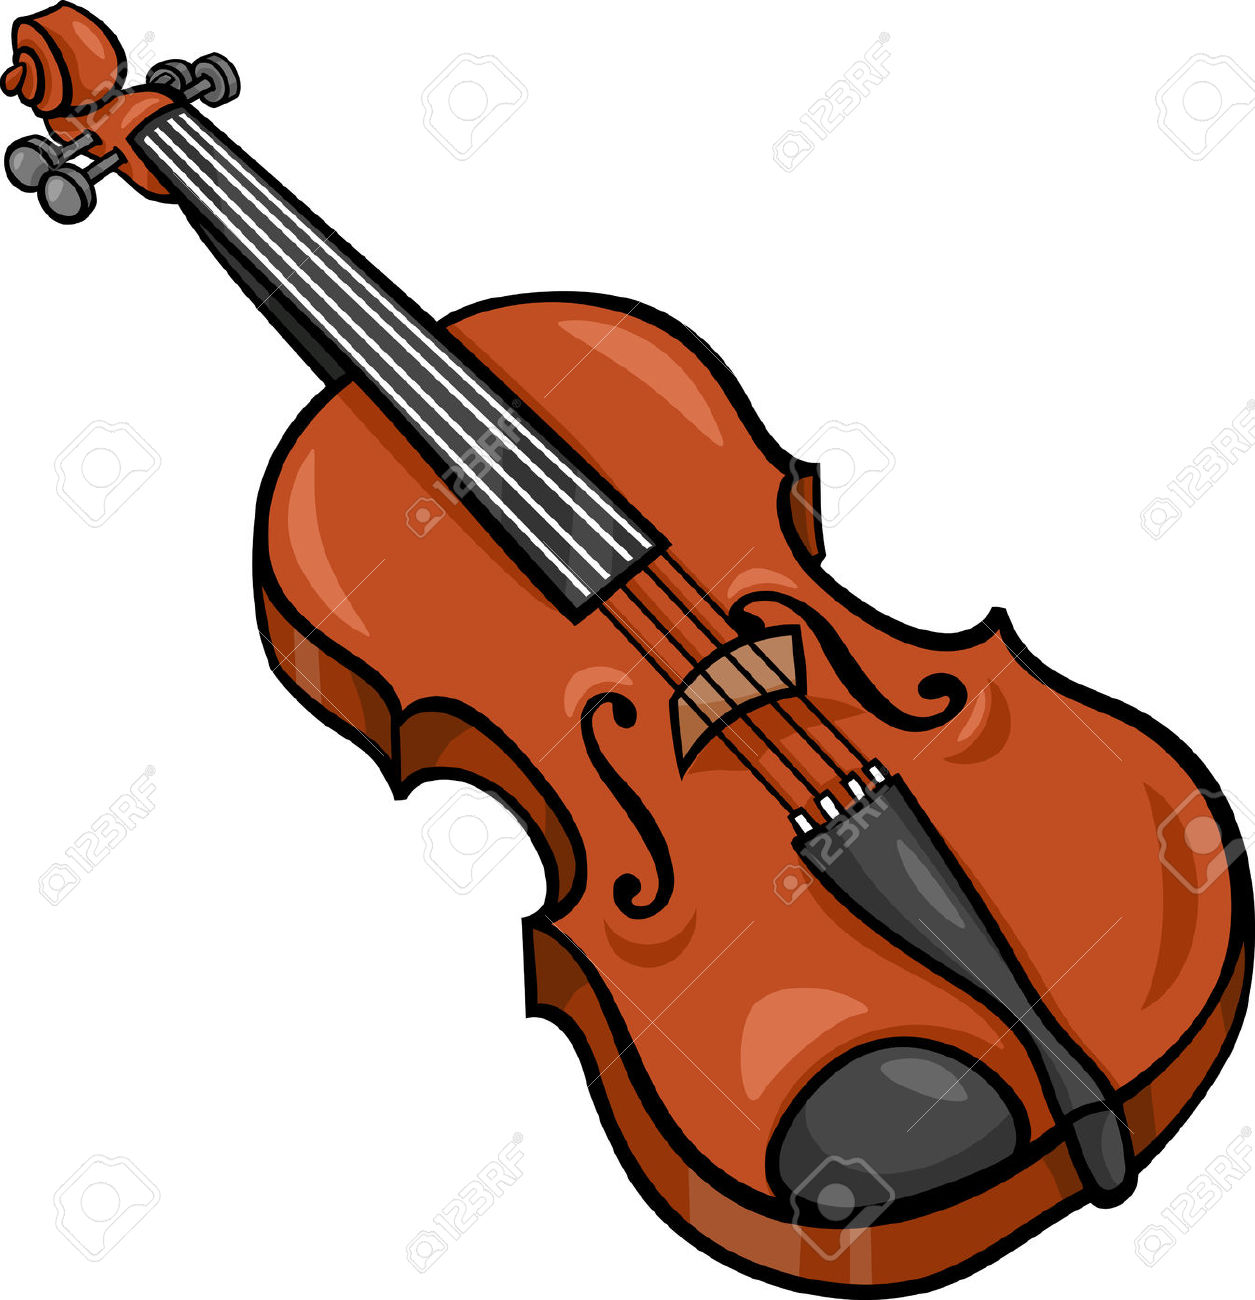 String instrument clipart - Clipground